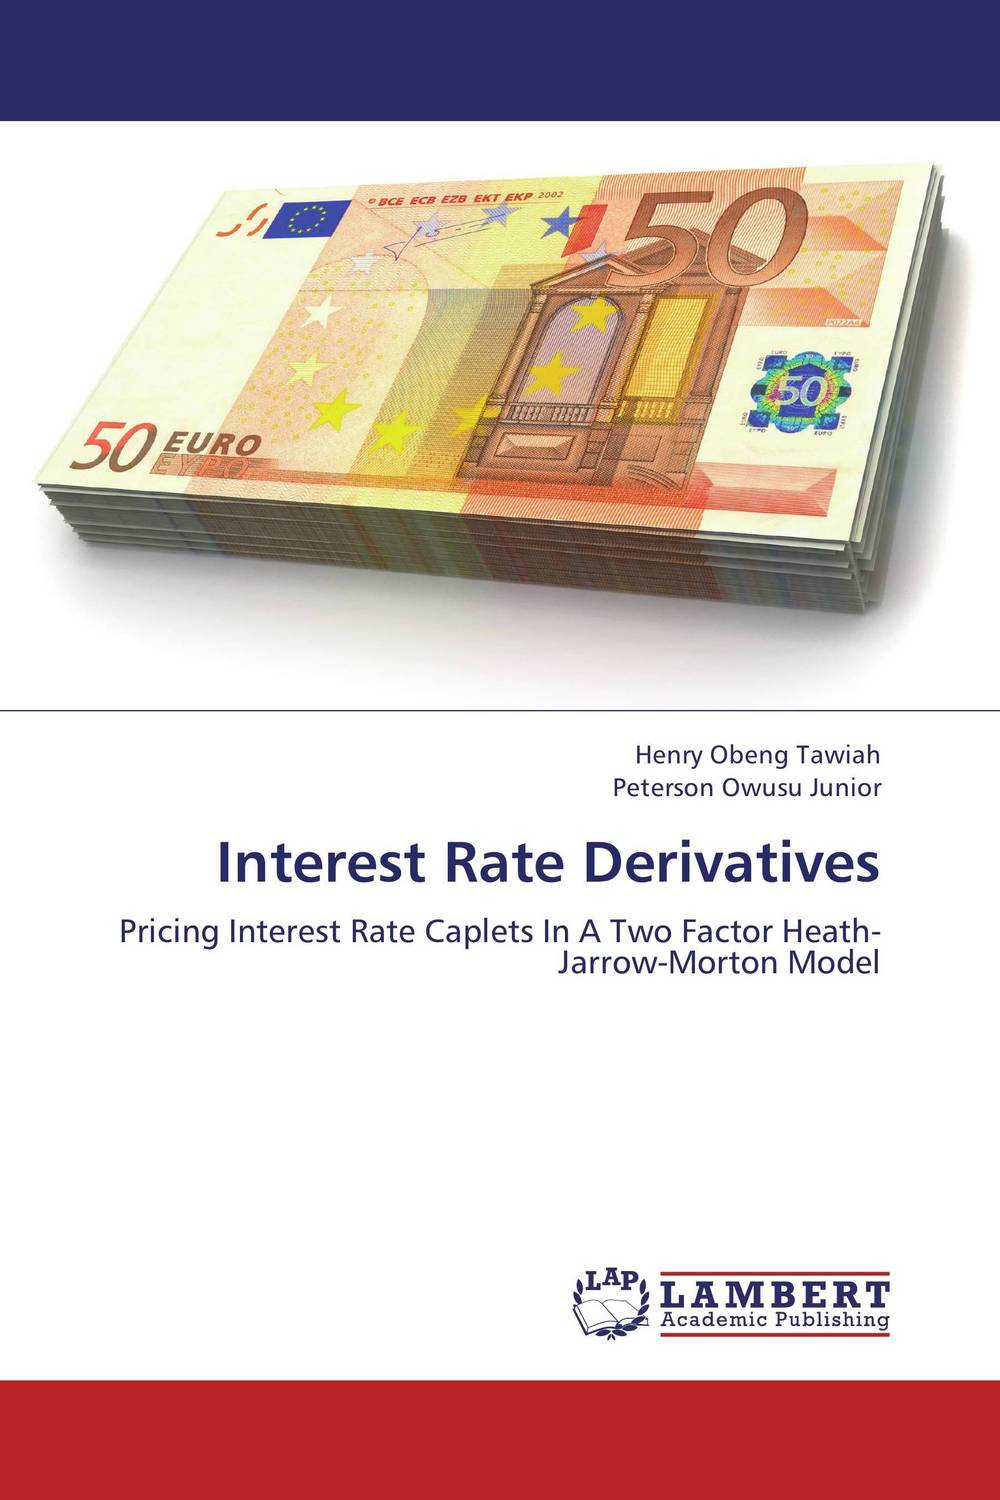 Interest Rate Derivatives advanced pricing of loans using the risk neutral approach